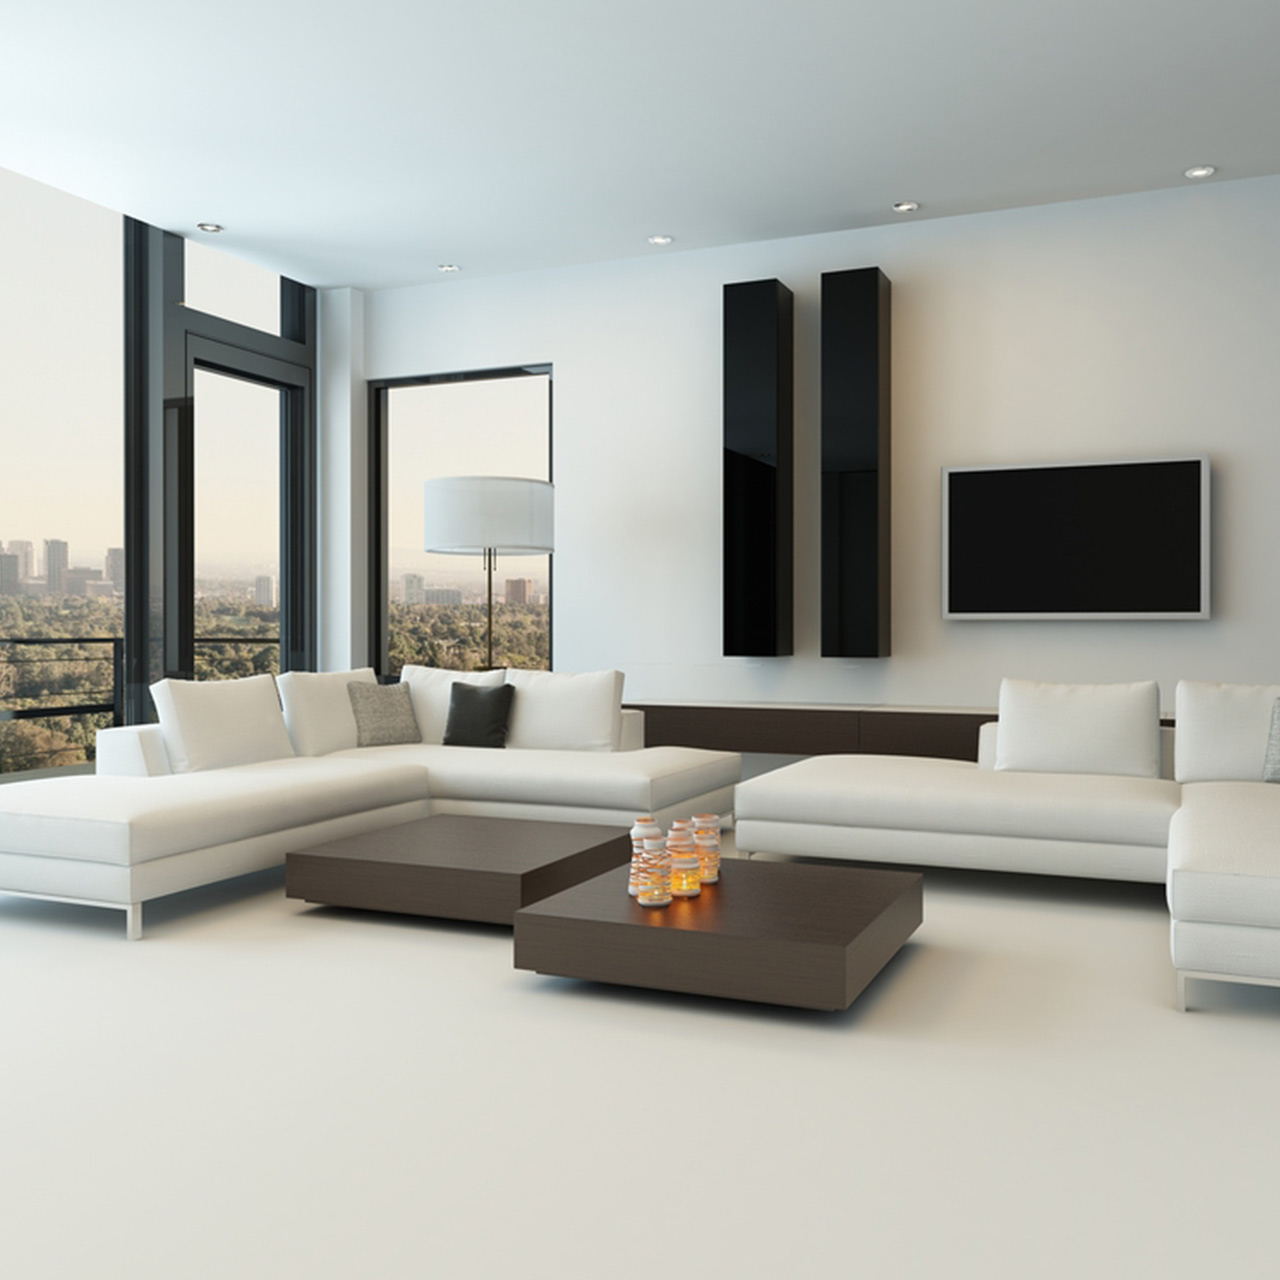 Furniture in your Penthouse Apartment